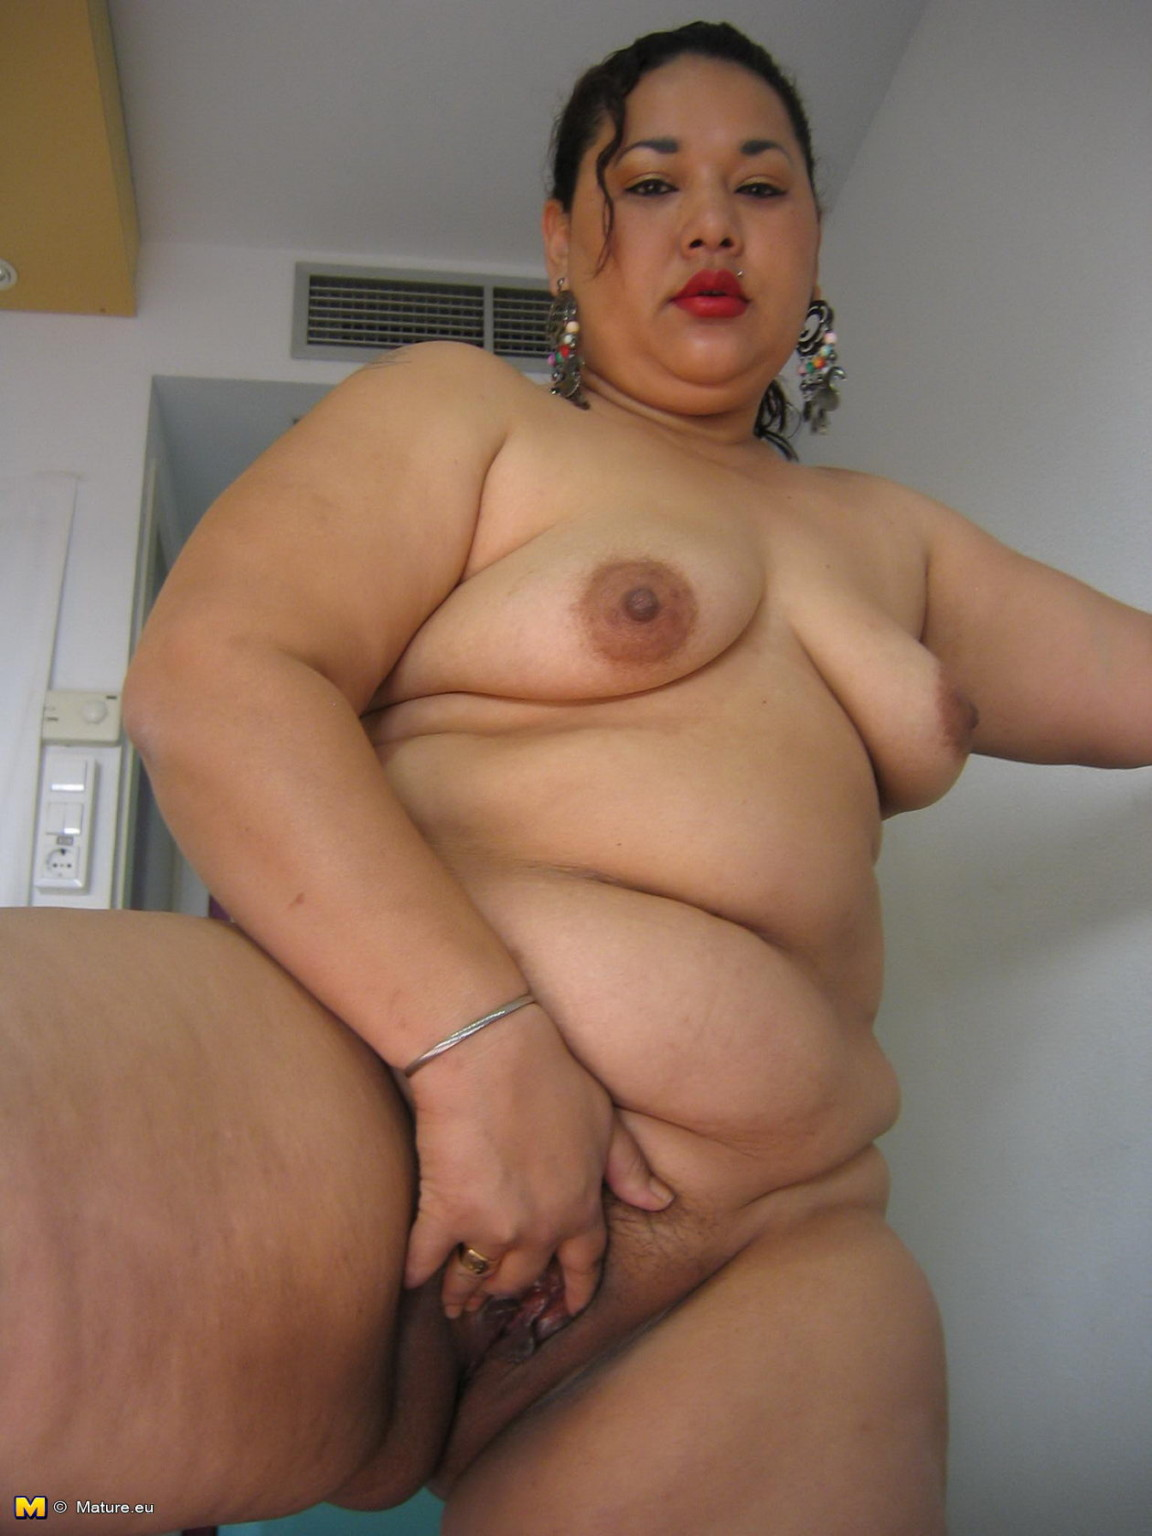 Love her chubby asian women nude like see you